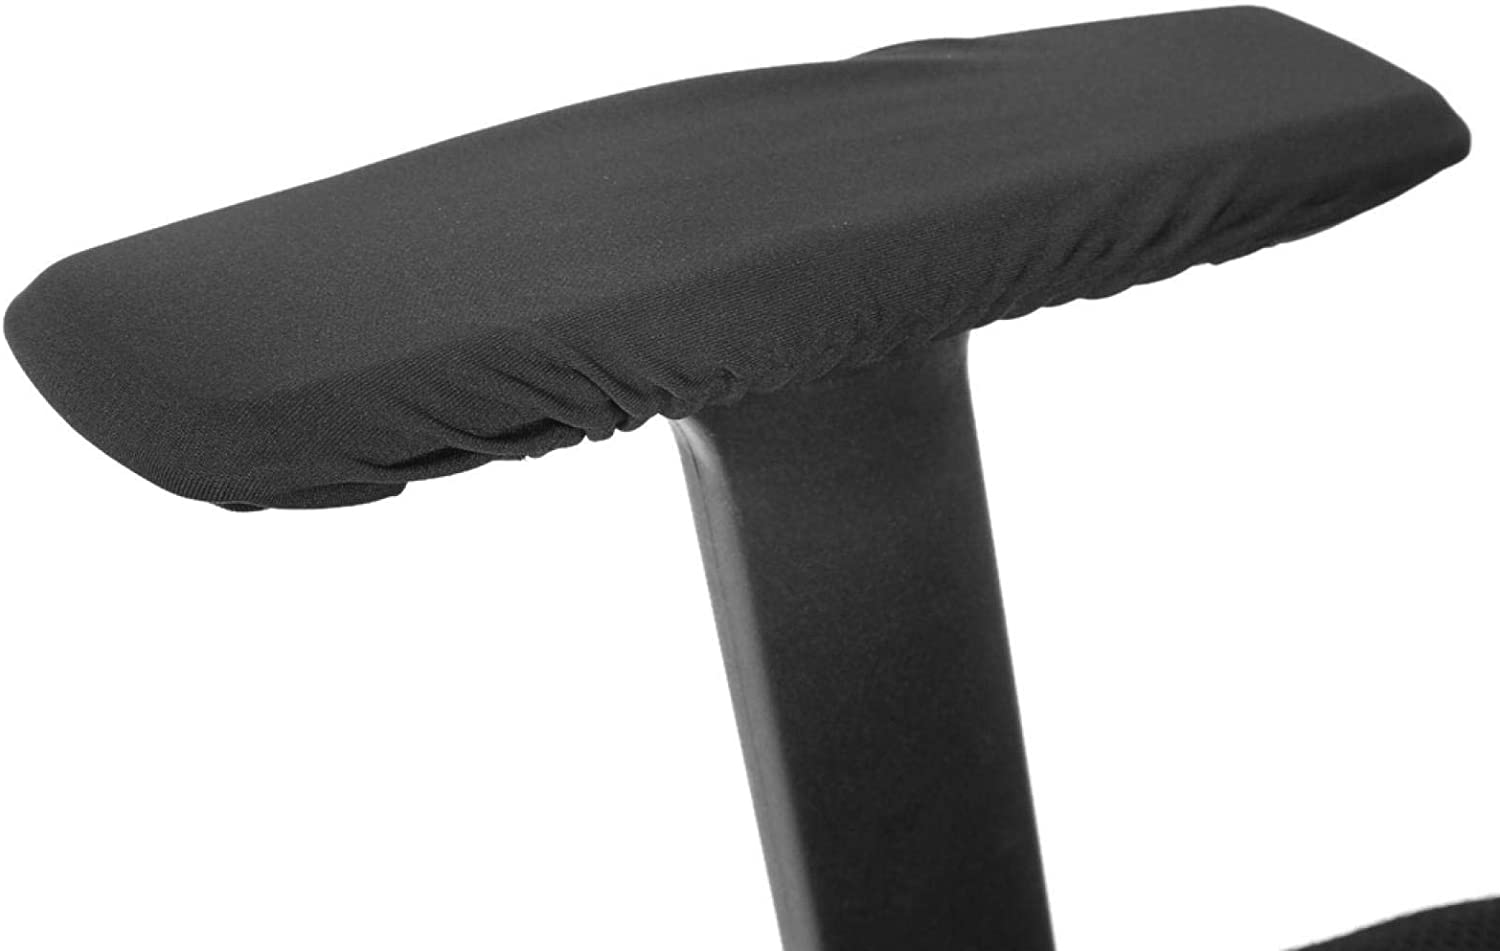 Yosoo Health Gear 1 Pair Office Computer Chair Arm Covers, Office Desk Chair Armrest Slipcovers, Removable Elastic Protector Office Armchair Cover for Work Station Desk Chair Rotating Chair(Black)